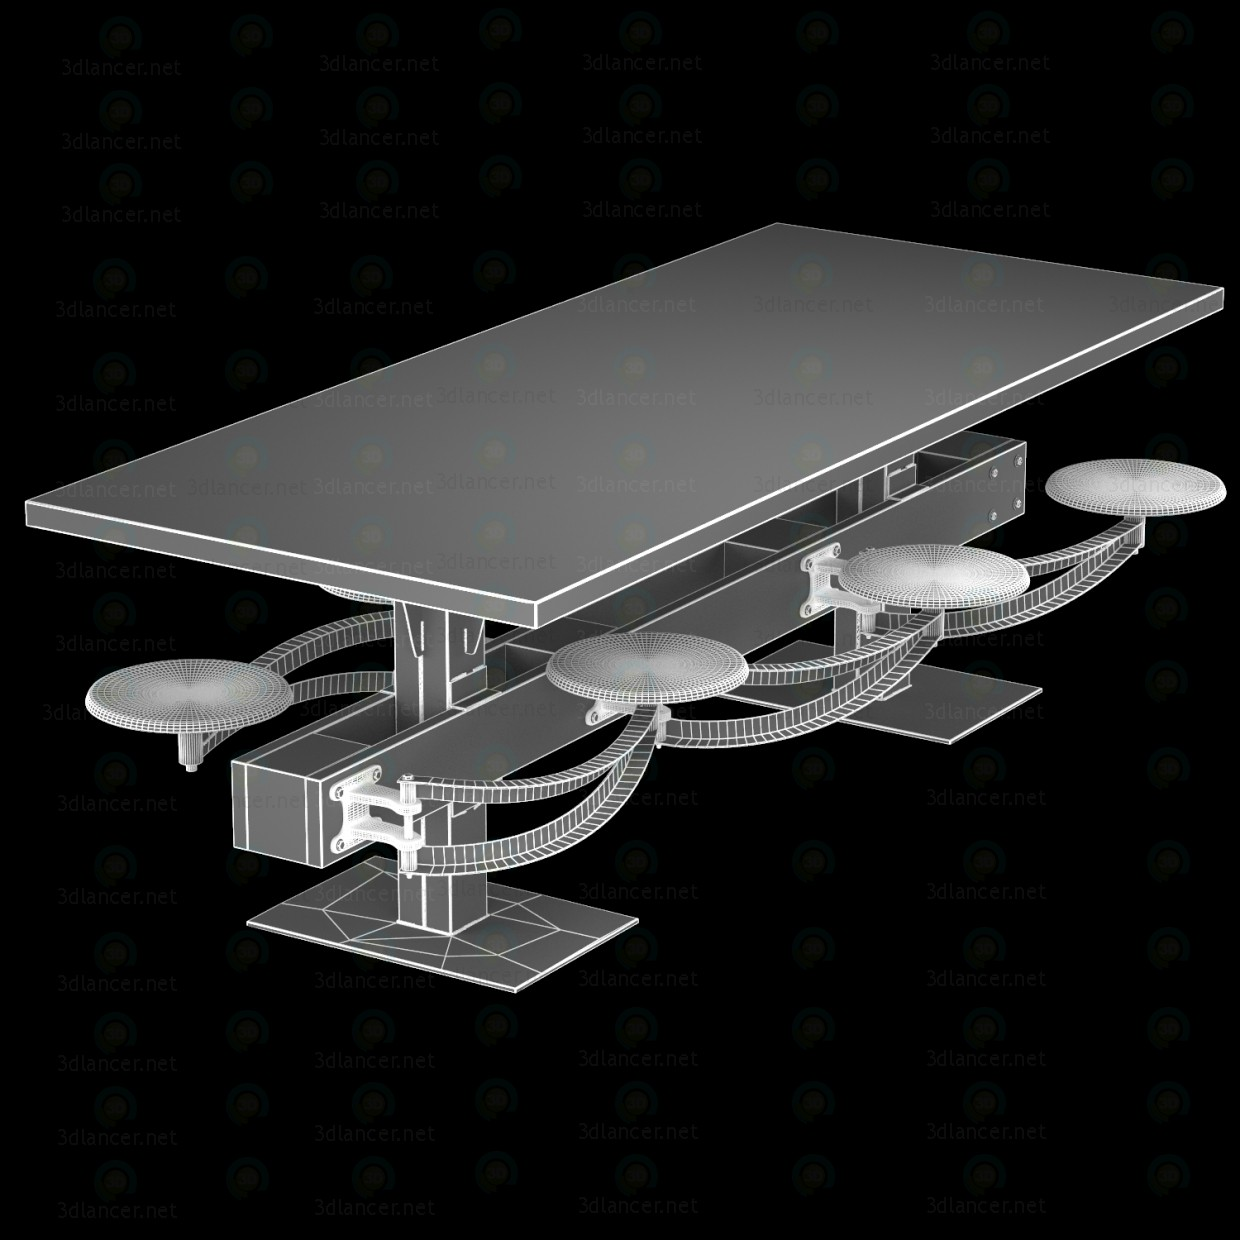 3d DINING TABLE PERRIN COMMUNAL TABLE LOFT model buy - render